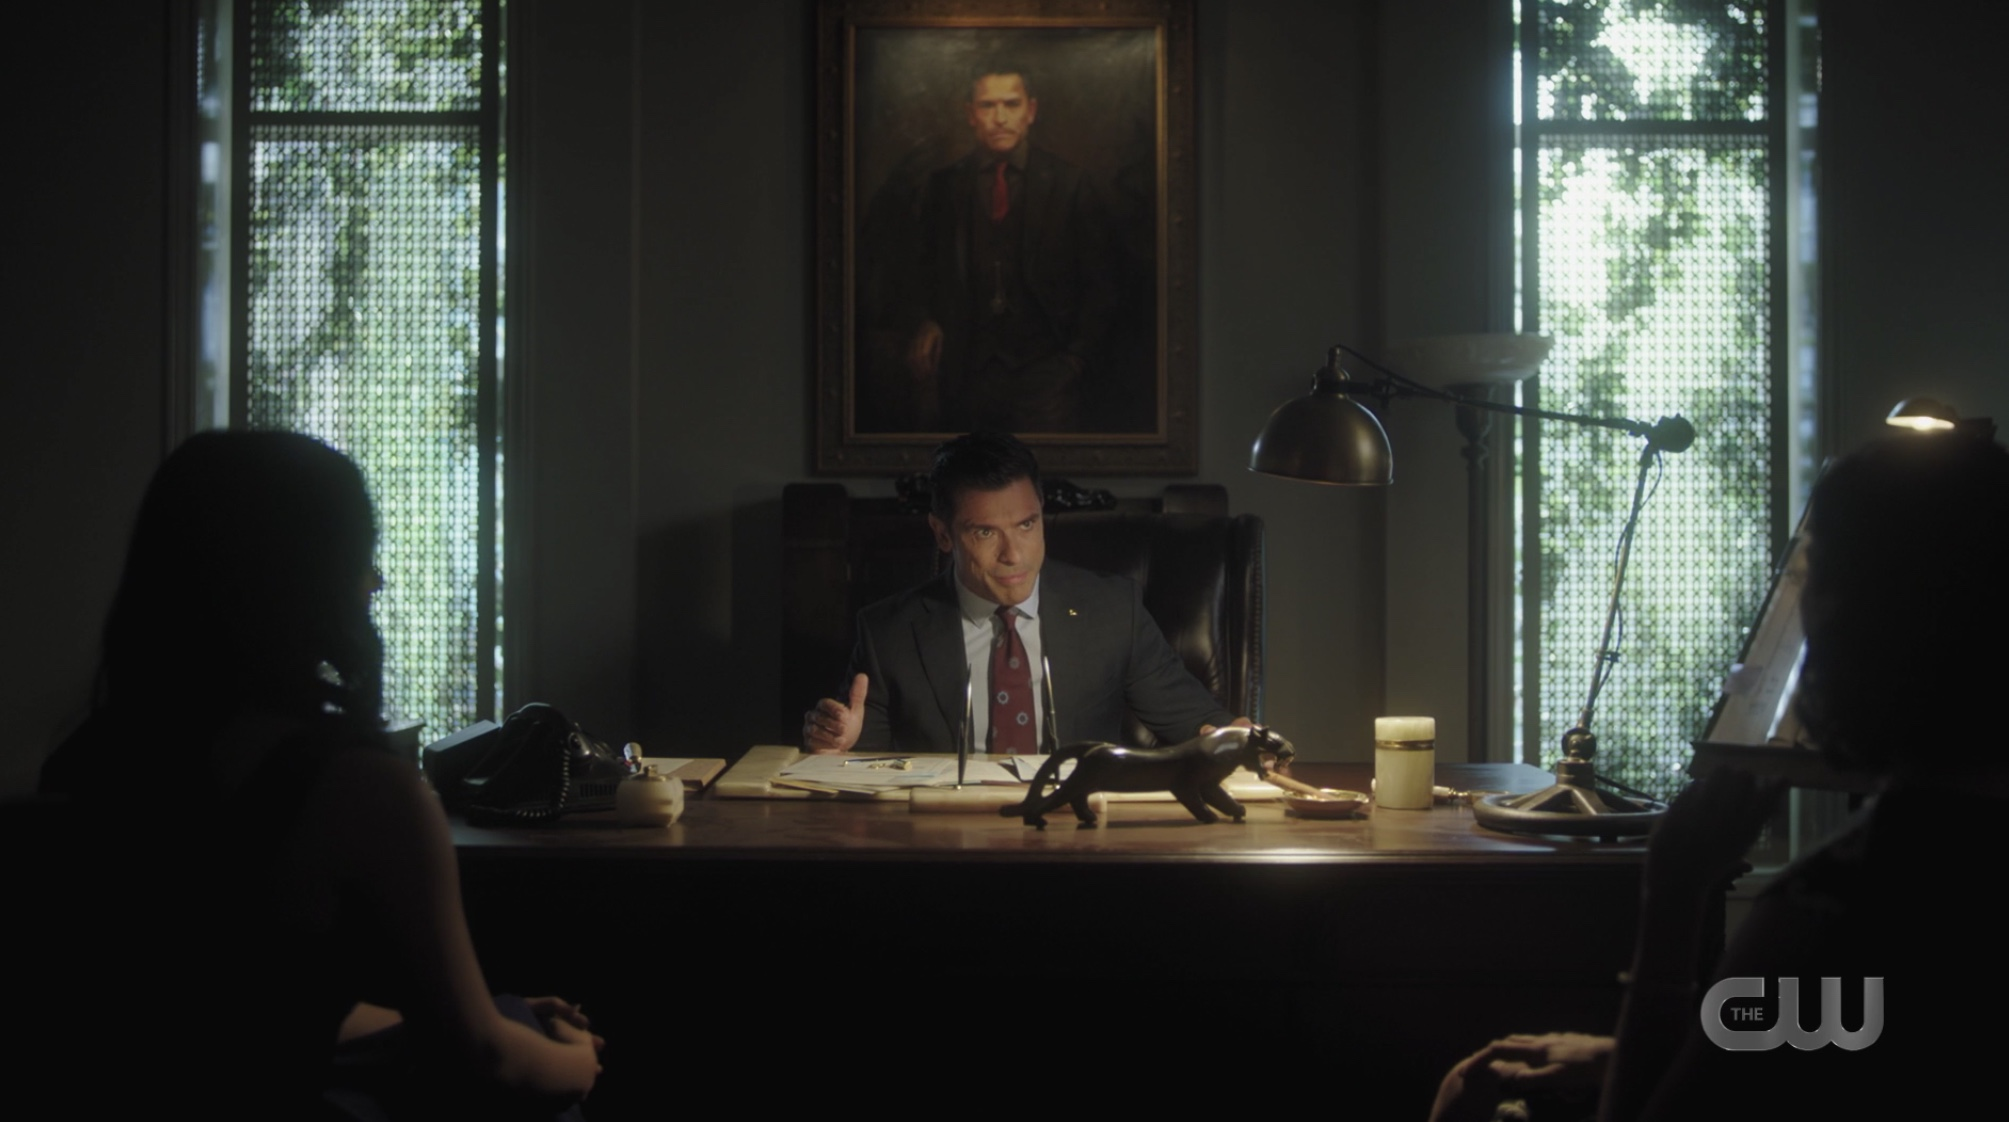 Hiram is given an ultimatum by Hermosa and Veronica